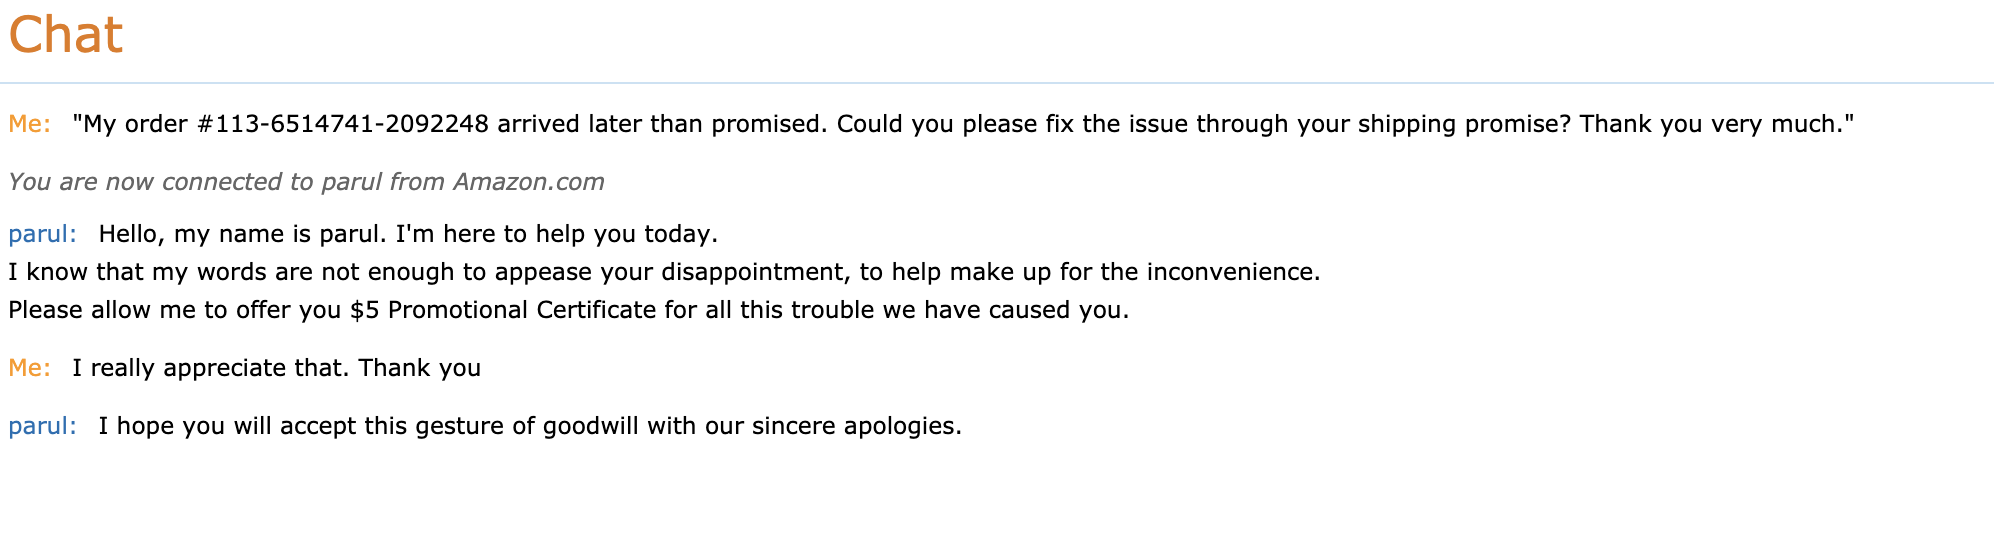 Paribus Late Delivery Amazon Support Chat